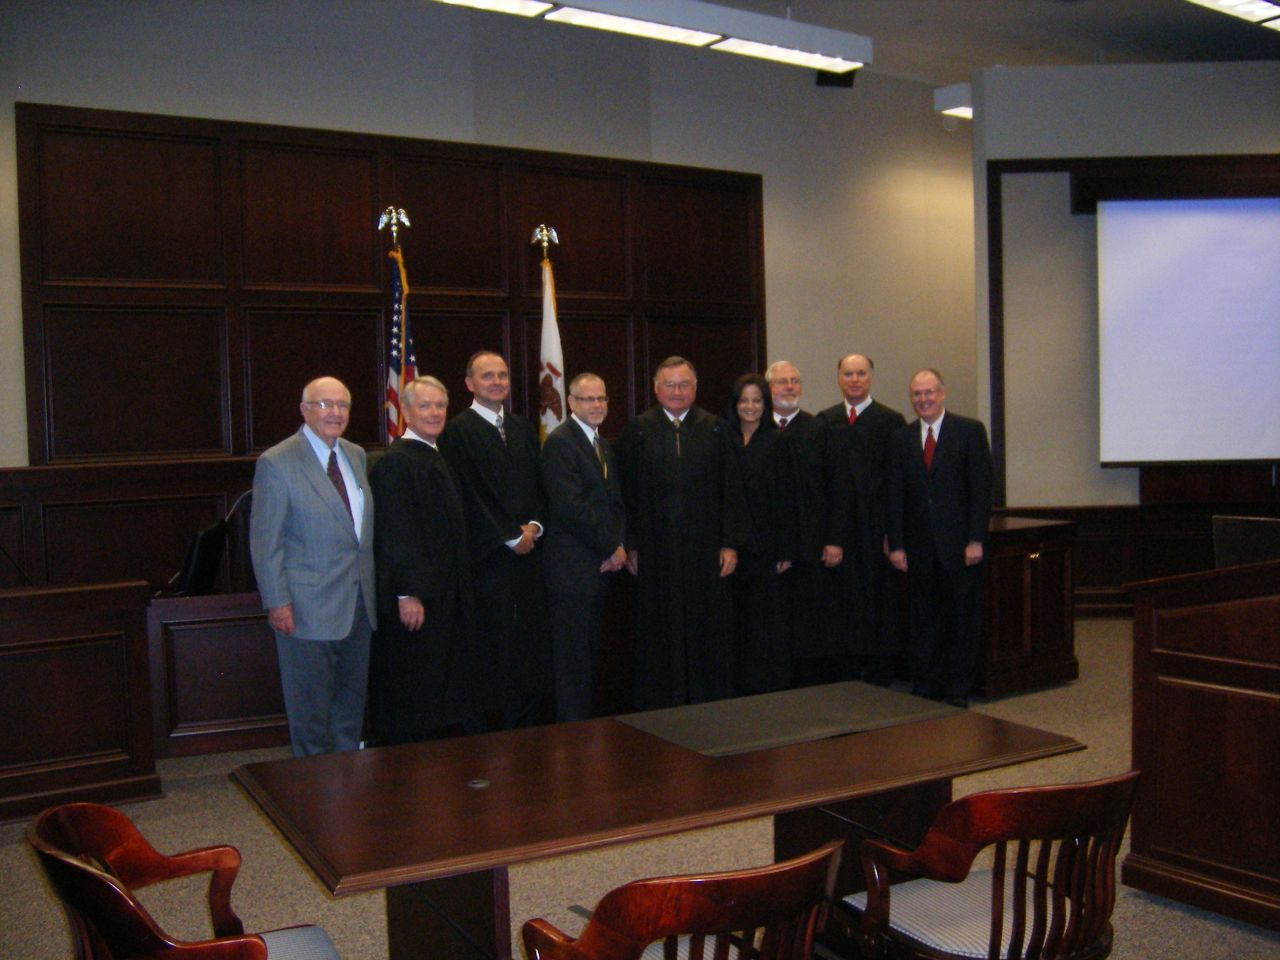 Justice Karmeier and other Judges from 5th District with ISBA 3rd Vice President, John E. Thies (far right) and his dad, ISBA Past President Richard L. Thies (far left).